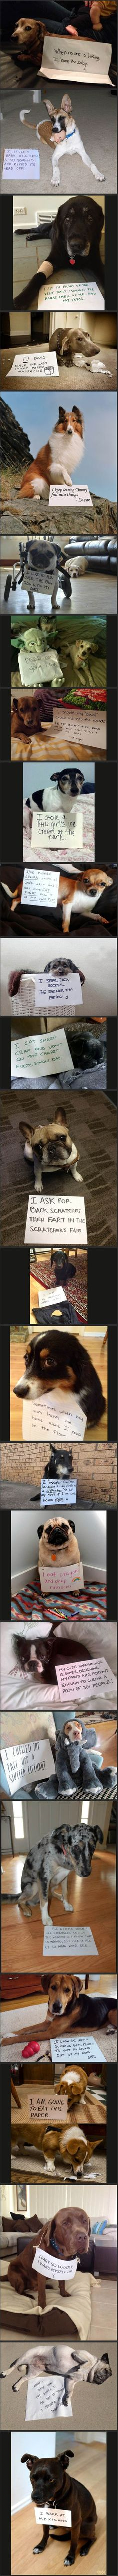 Dog shaming... Epic win...